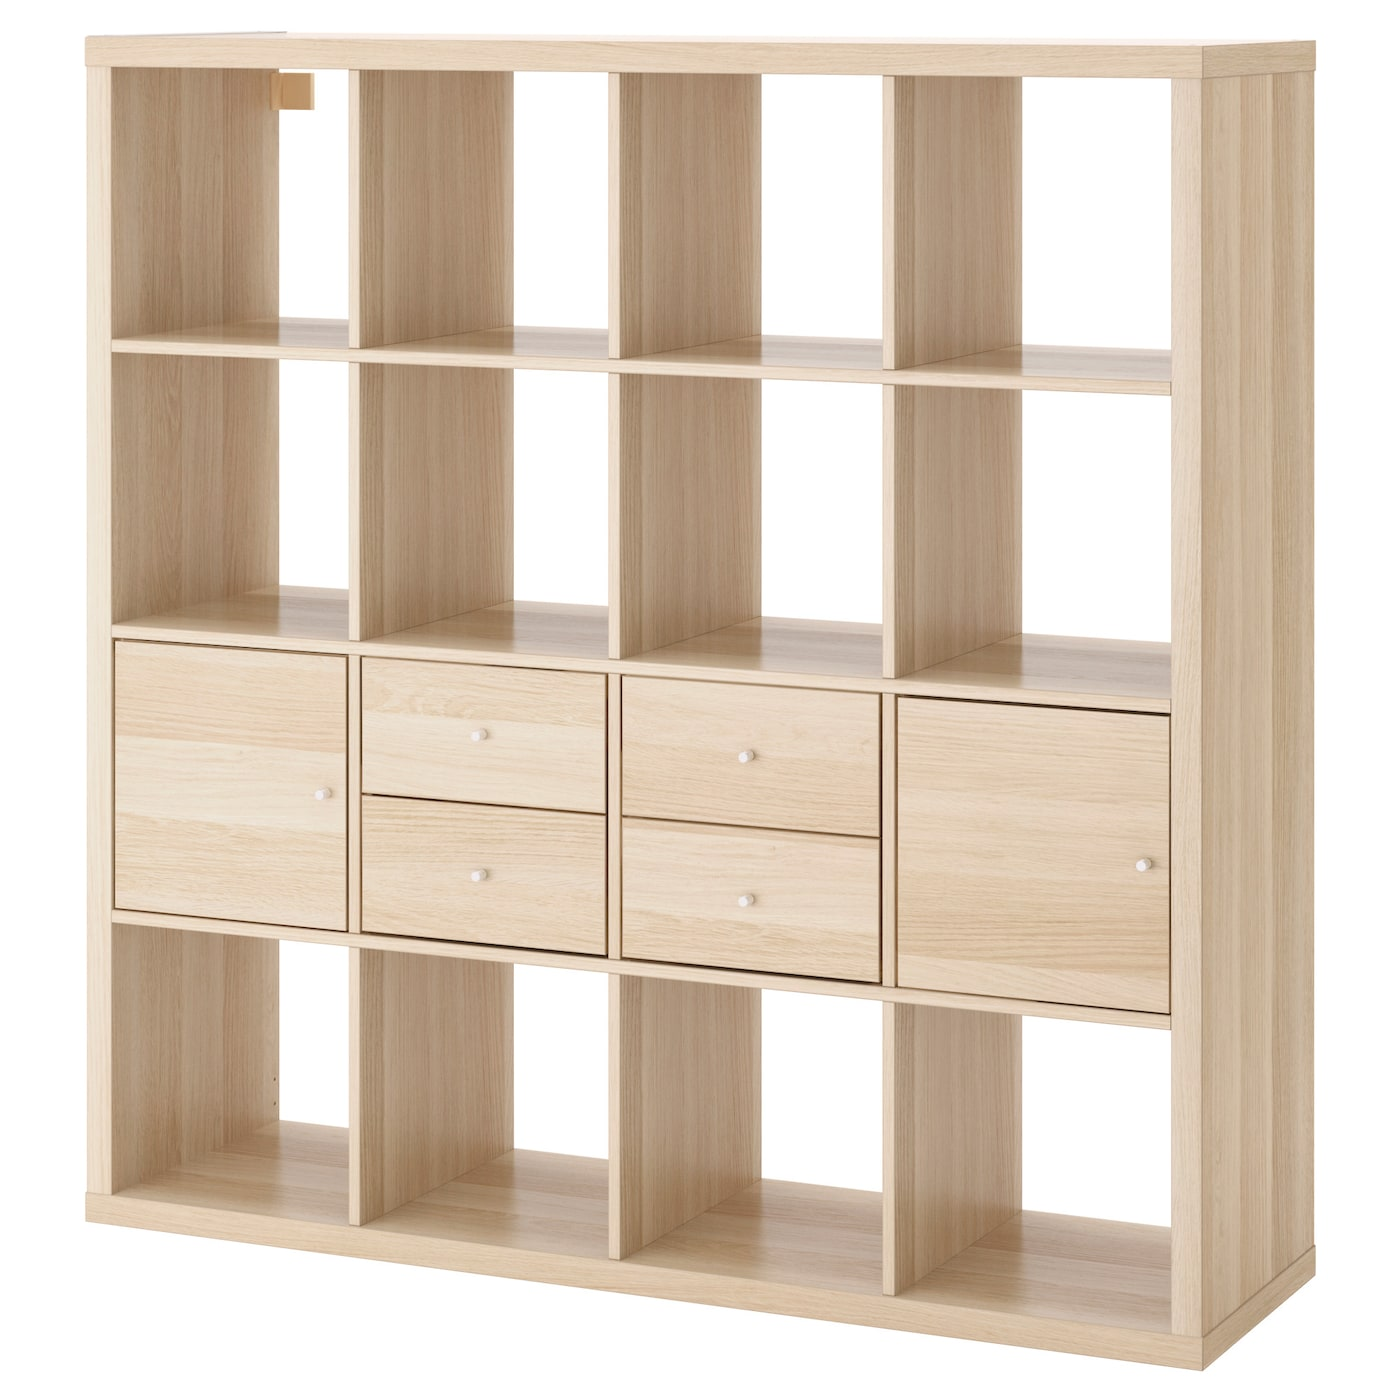 kallax shelving unit with 4 inserts white stained oak effect 147x147 cm ikea. Black Bedroom Furniture Sets. Home Design Ideas